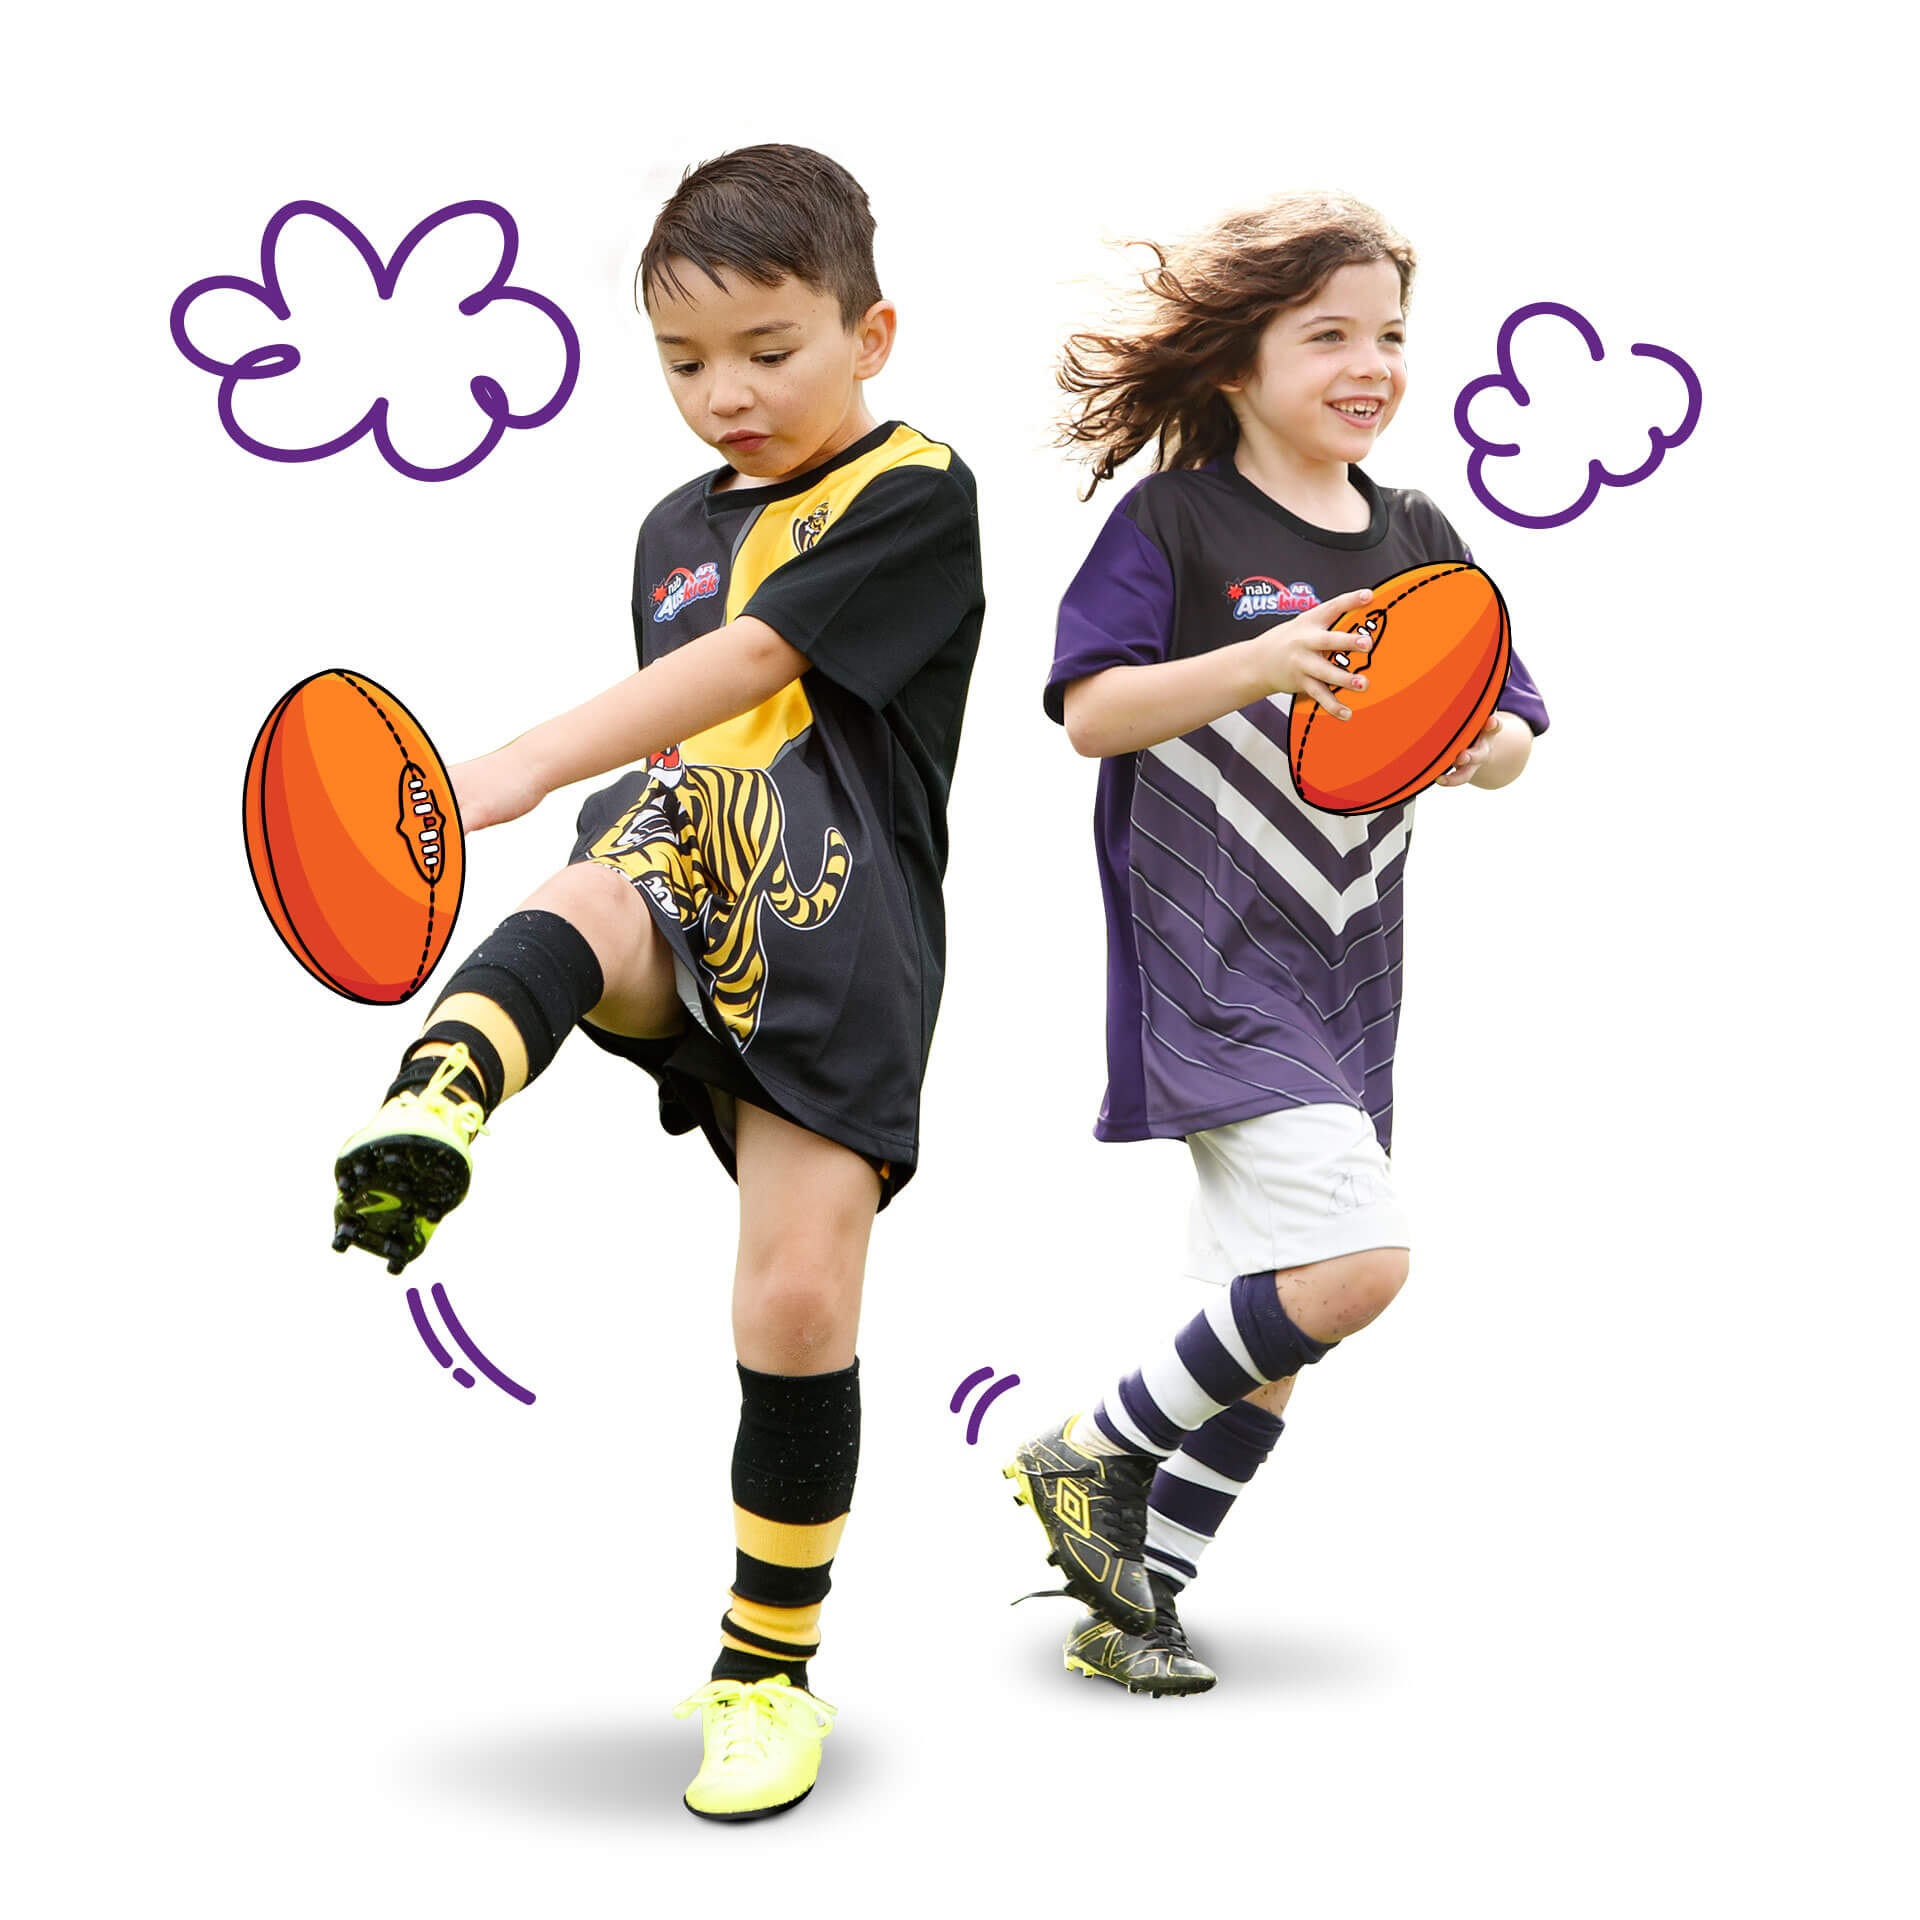 A boy and a girl playing footy